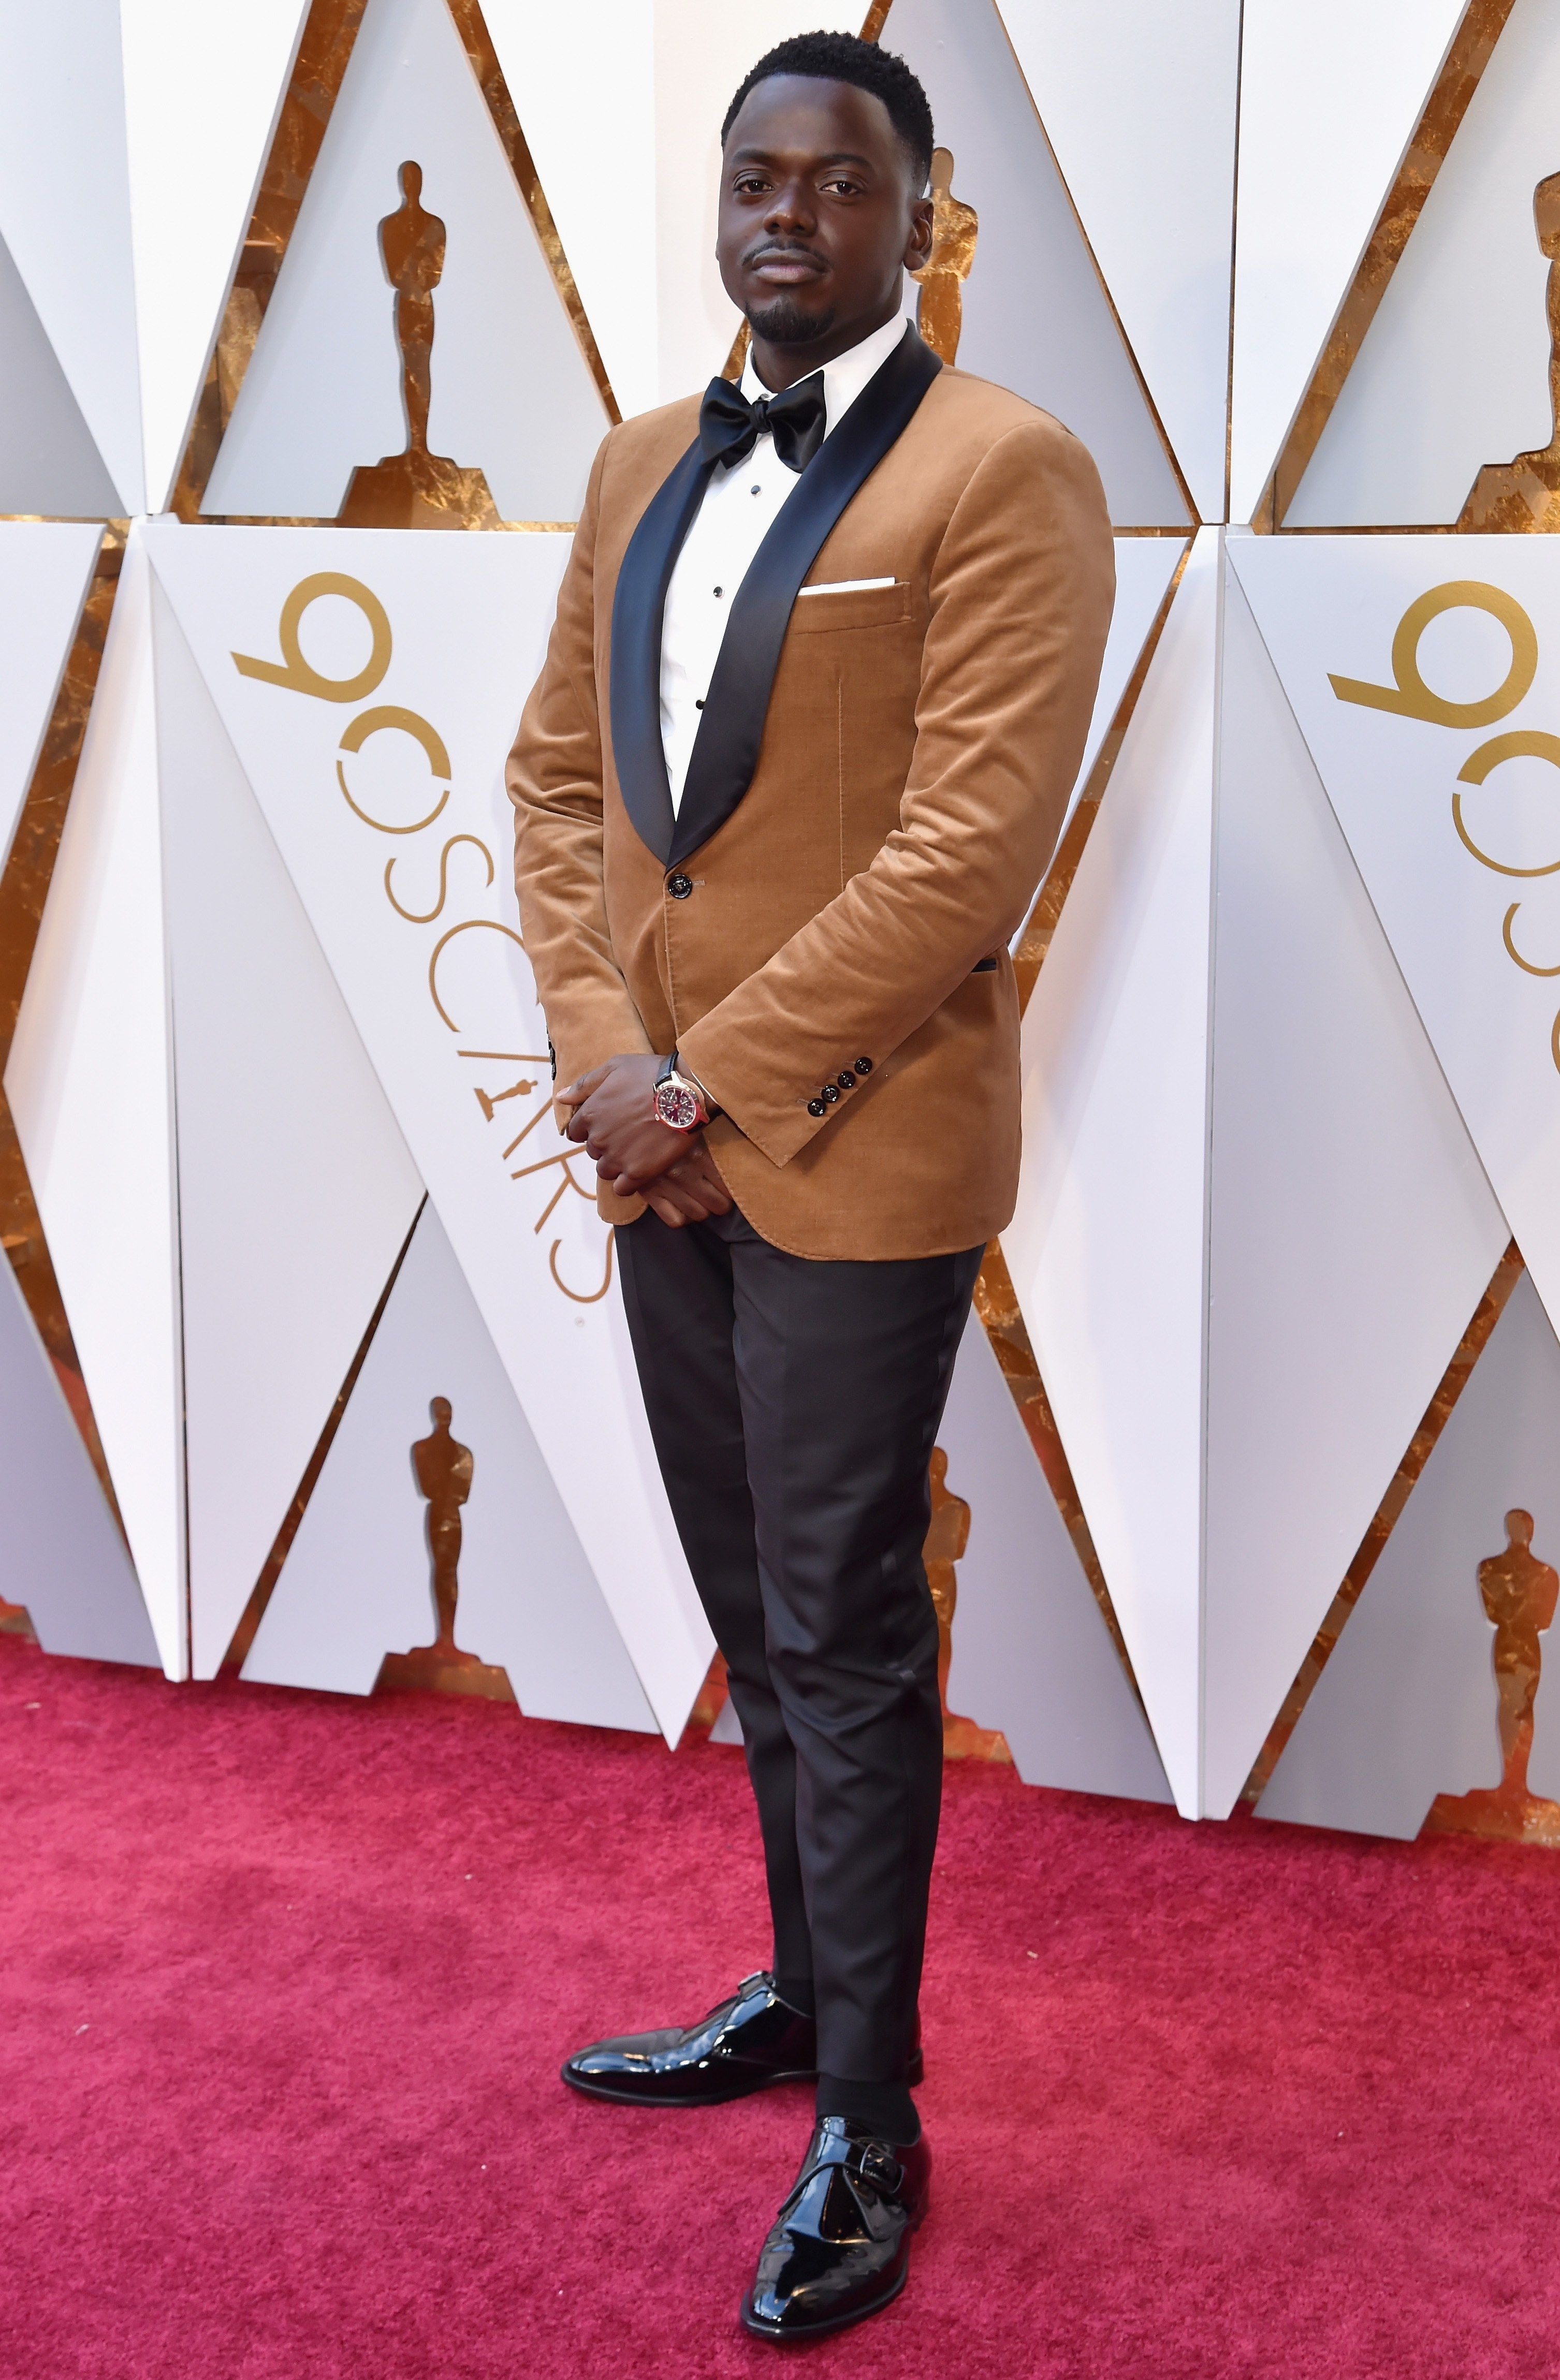 Jacket bomber stunning on the red carpet foto